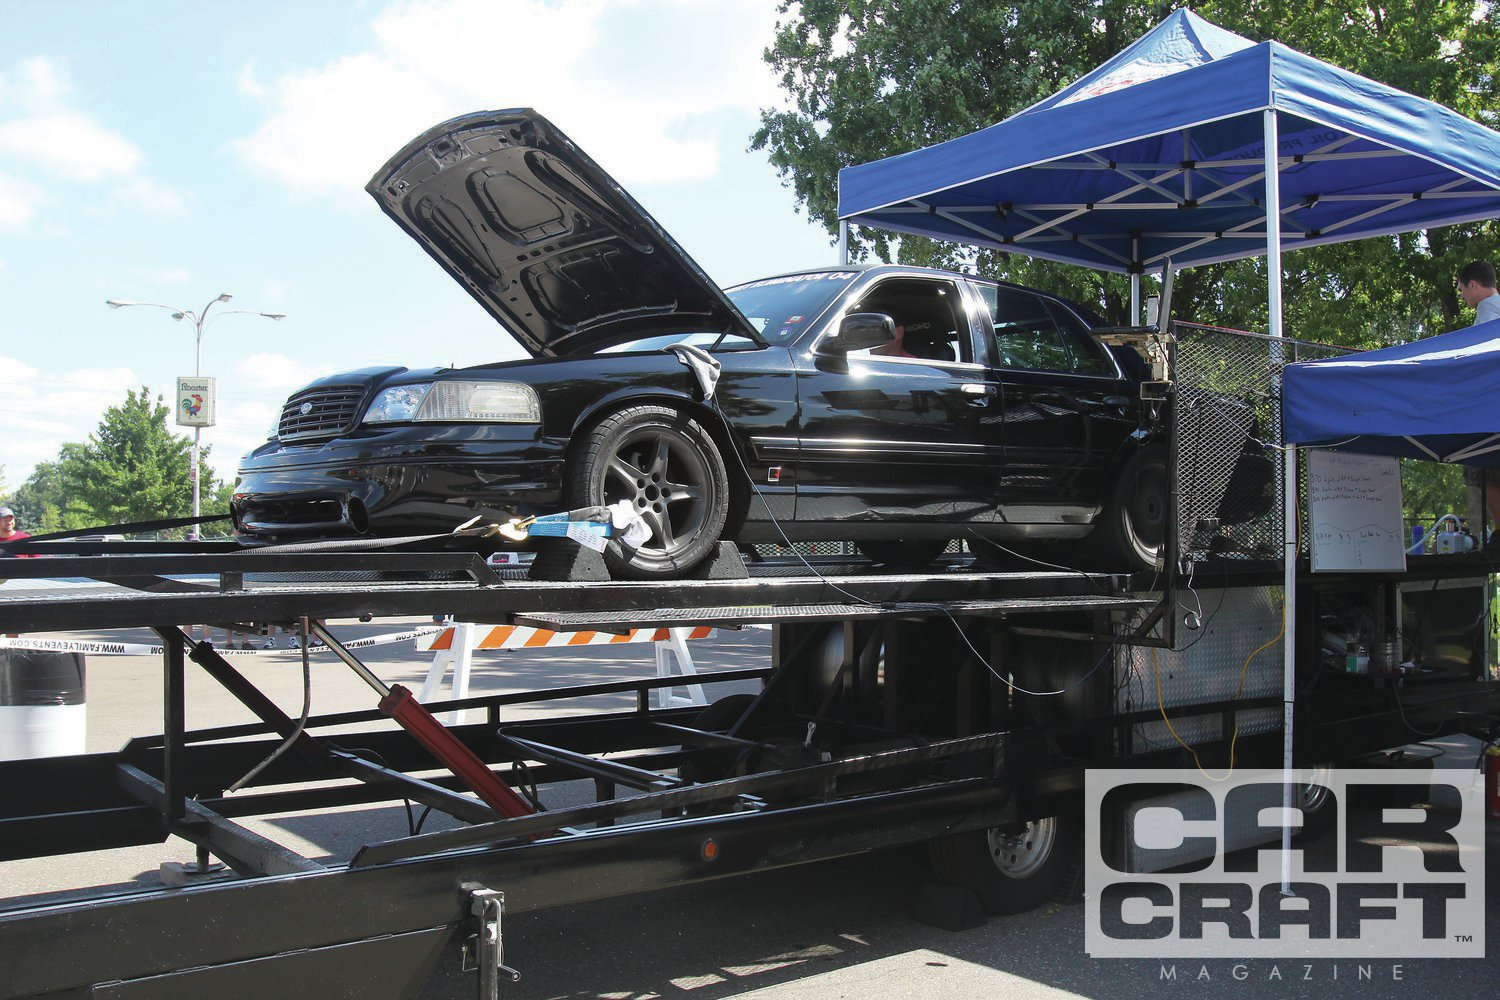 Mike Callahan came back again this year with his Crown Vic to show that even big cars can be competitive on a tight autocross. On the chassis dyno, his 4.6L Ford made 276 rwhp.